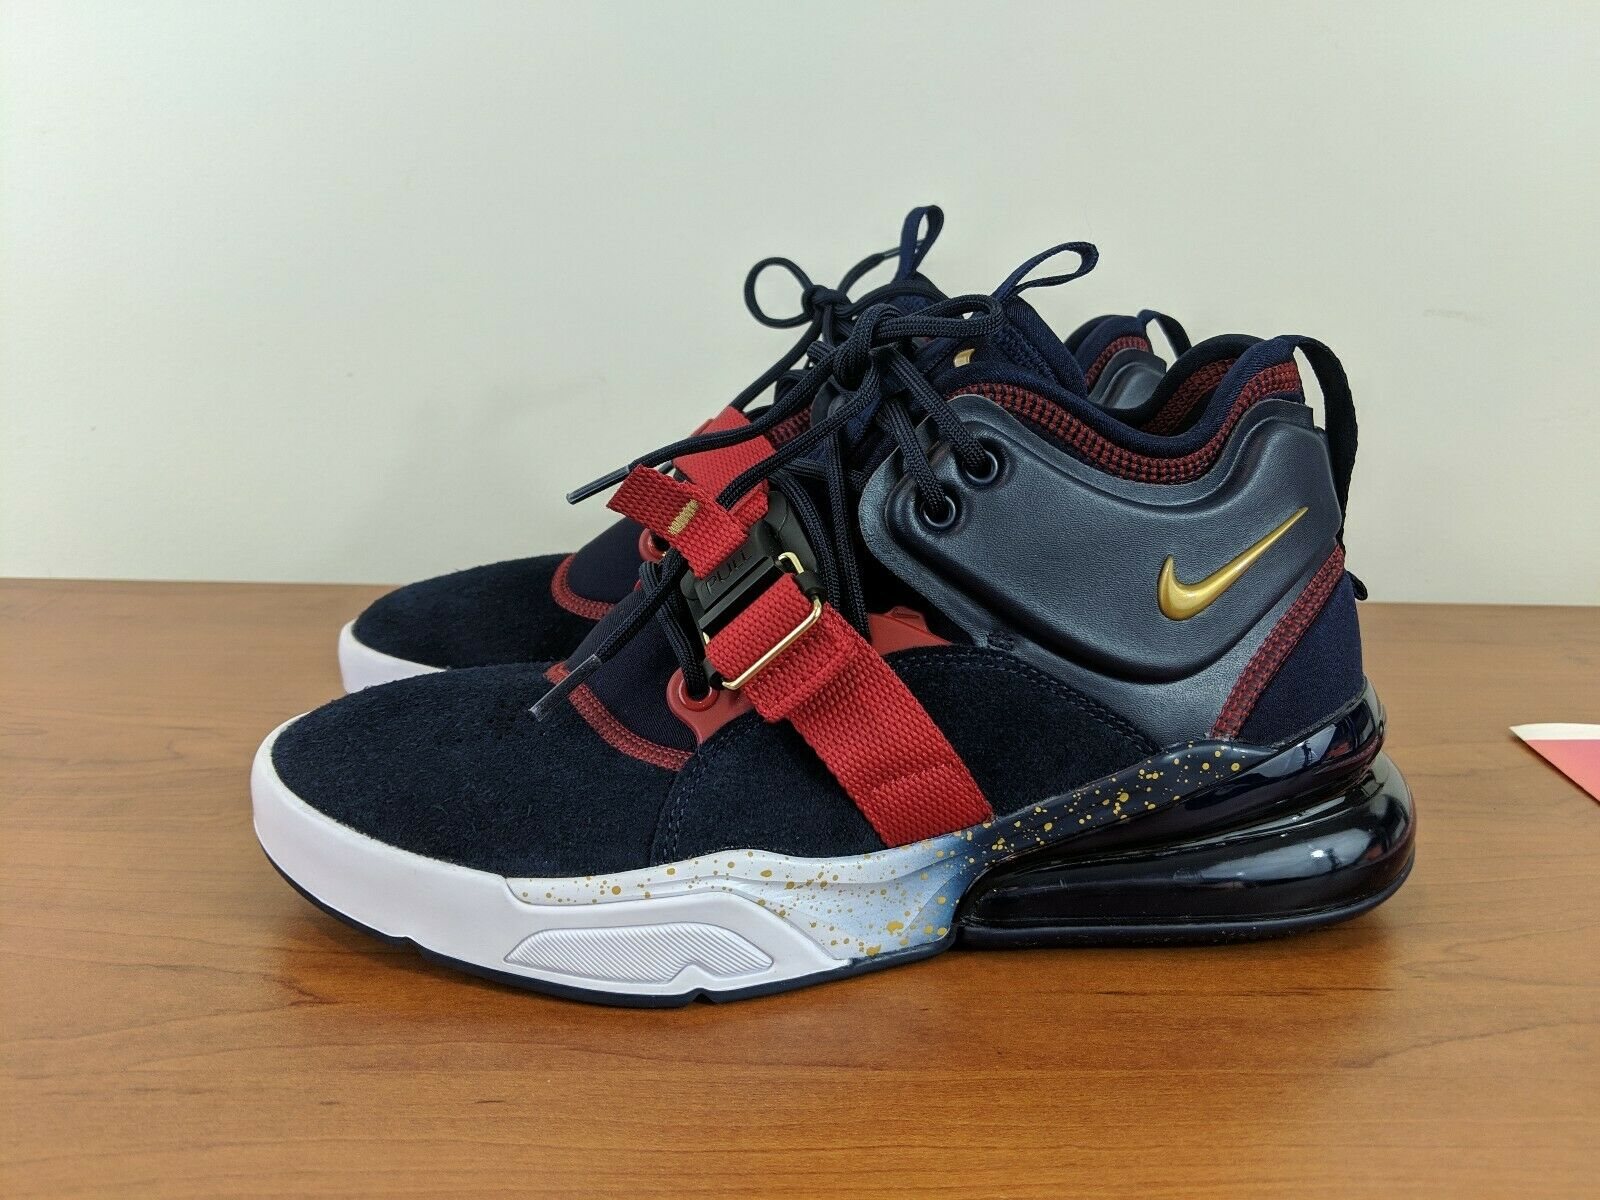 Nike Air Force 270 Olympic Dream Team USA Obsidian gold Max AH6772-400 Sz 7.5